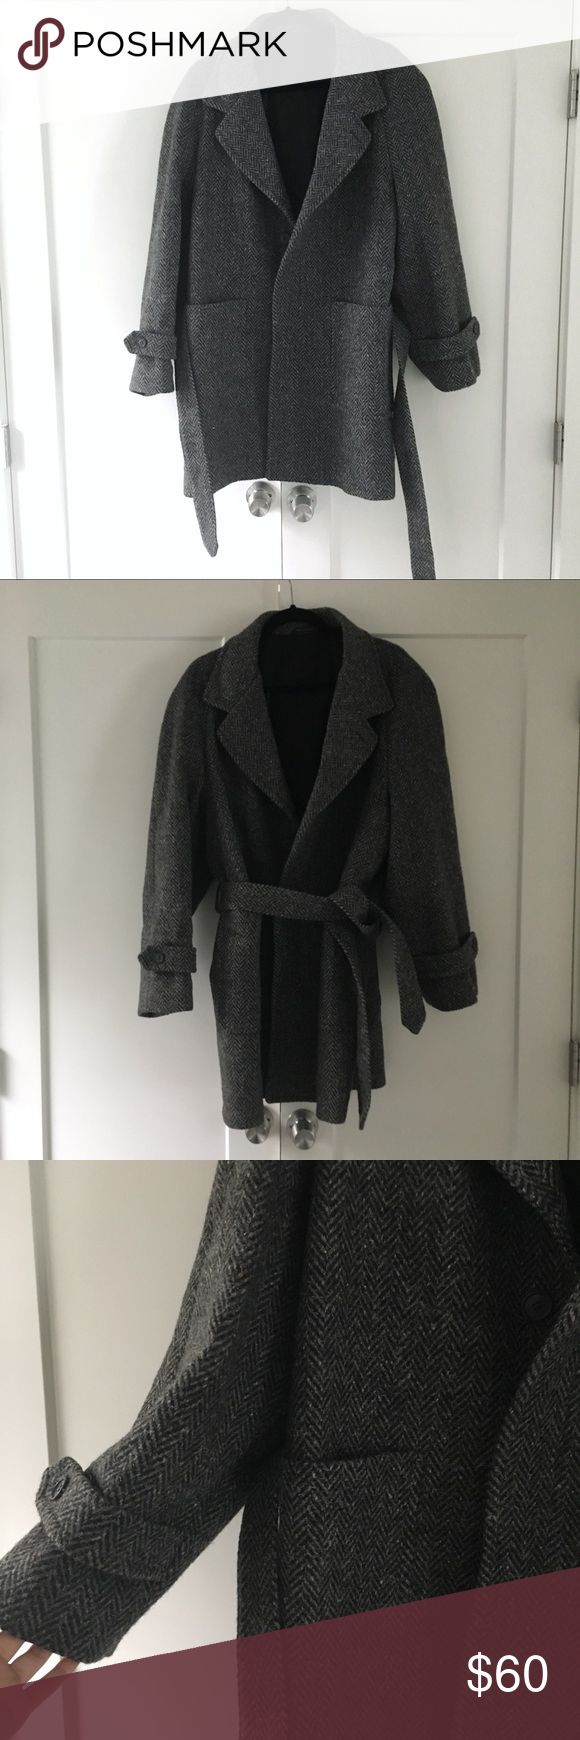 Men's Vintage Herringbone Wool Pea Coat Super cool men's vintage winter wool coat - lined and has waist tie & pockets. Size 40 reg. Will mark it a L. Not sure the exact fiber content but I know it's wool or wool blend with something else. Needs a dry cleaning as it's been in storage but will freshen up nicely. Brand is a vintage 1960's brand! Excellent condition. No trades Vintage Jackets & Coats Pea Coats